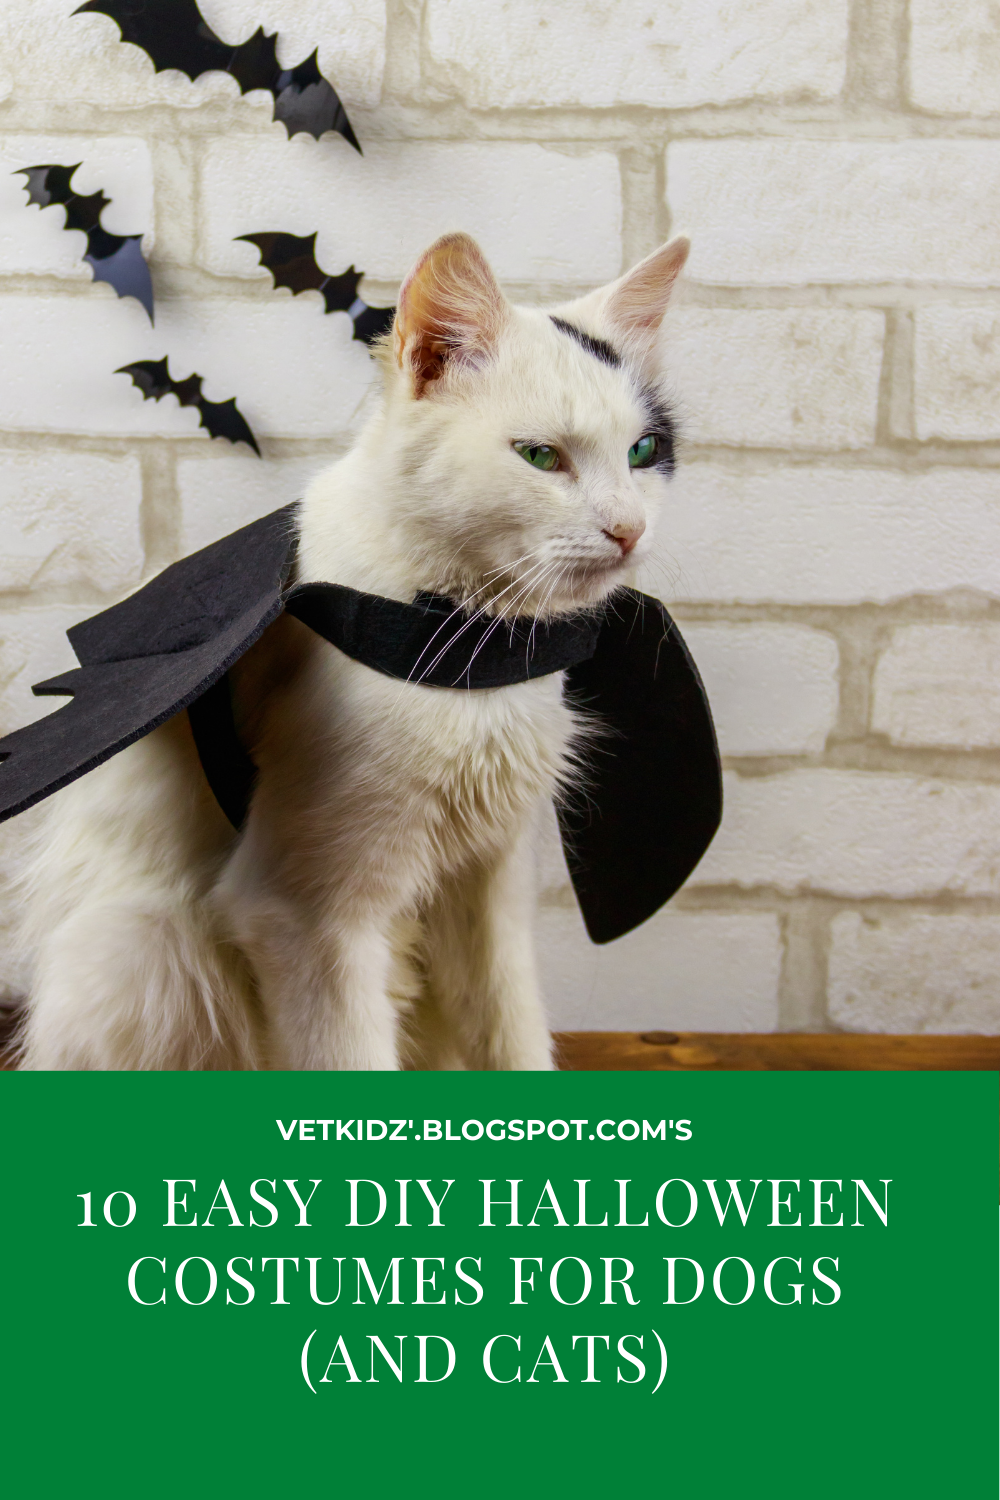 10 Easy DIY Halloween costumes for dogs (and cats) -   19 diy Halloween Costumes cat ideas